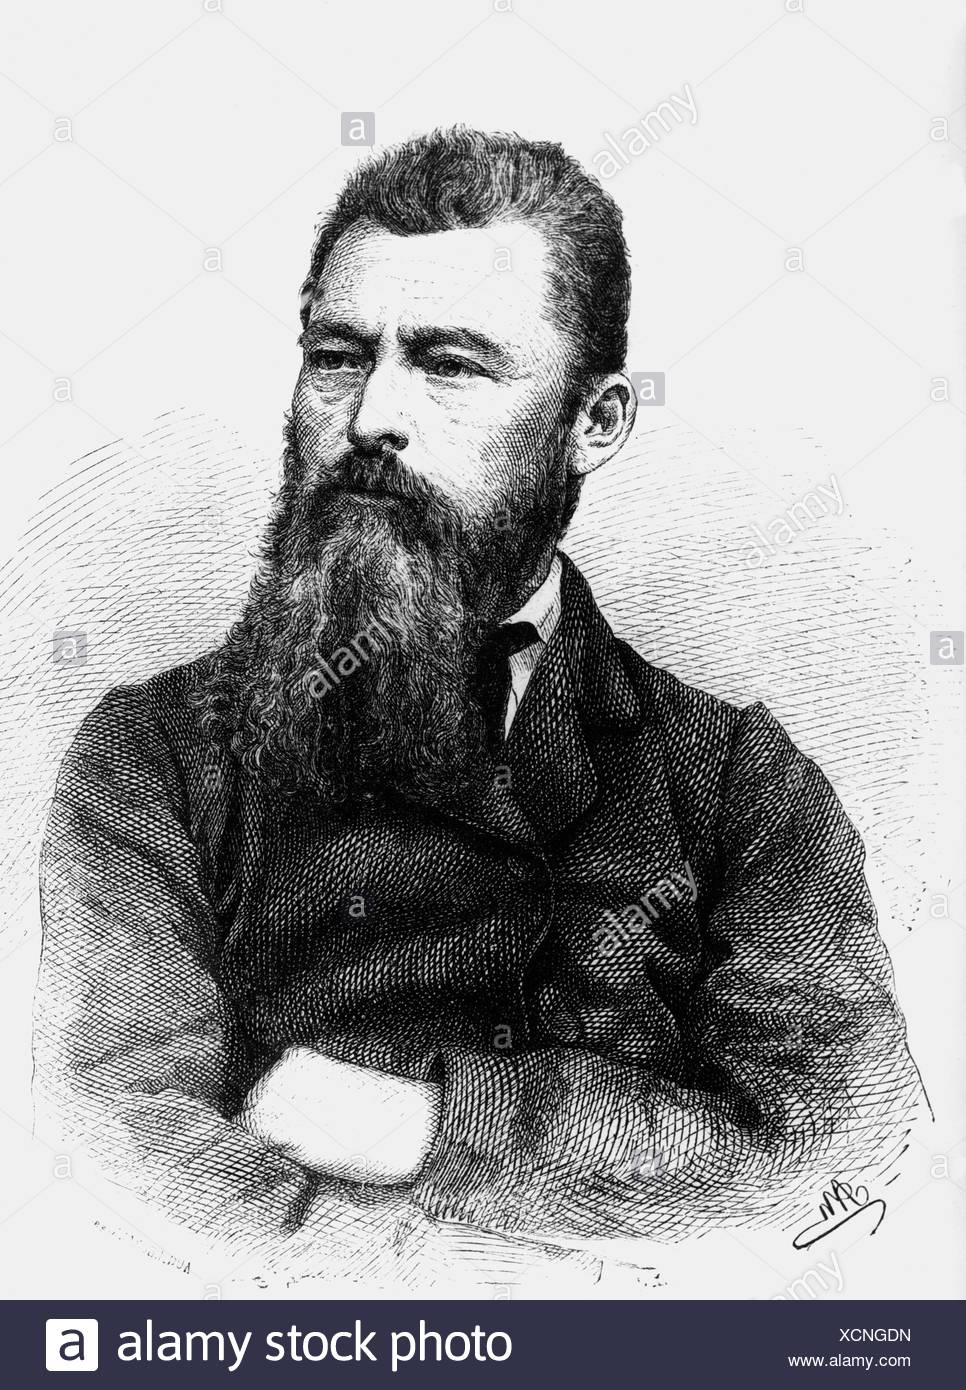 Feuerbach, Ludwig, 28.7.1804 - 13.9.1872, German philosopher, wood engraving, 1872, Additional-Rights-Clearances-NA - Stock Image